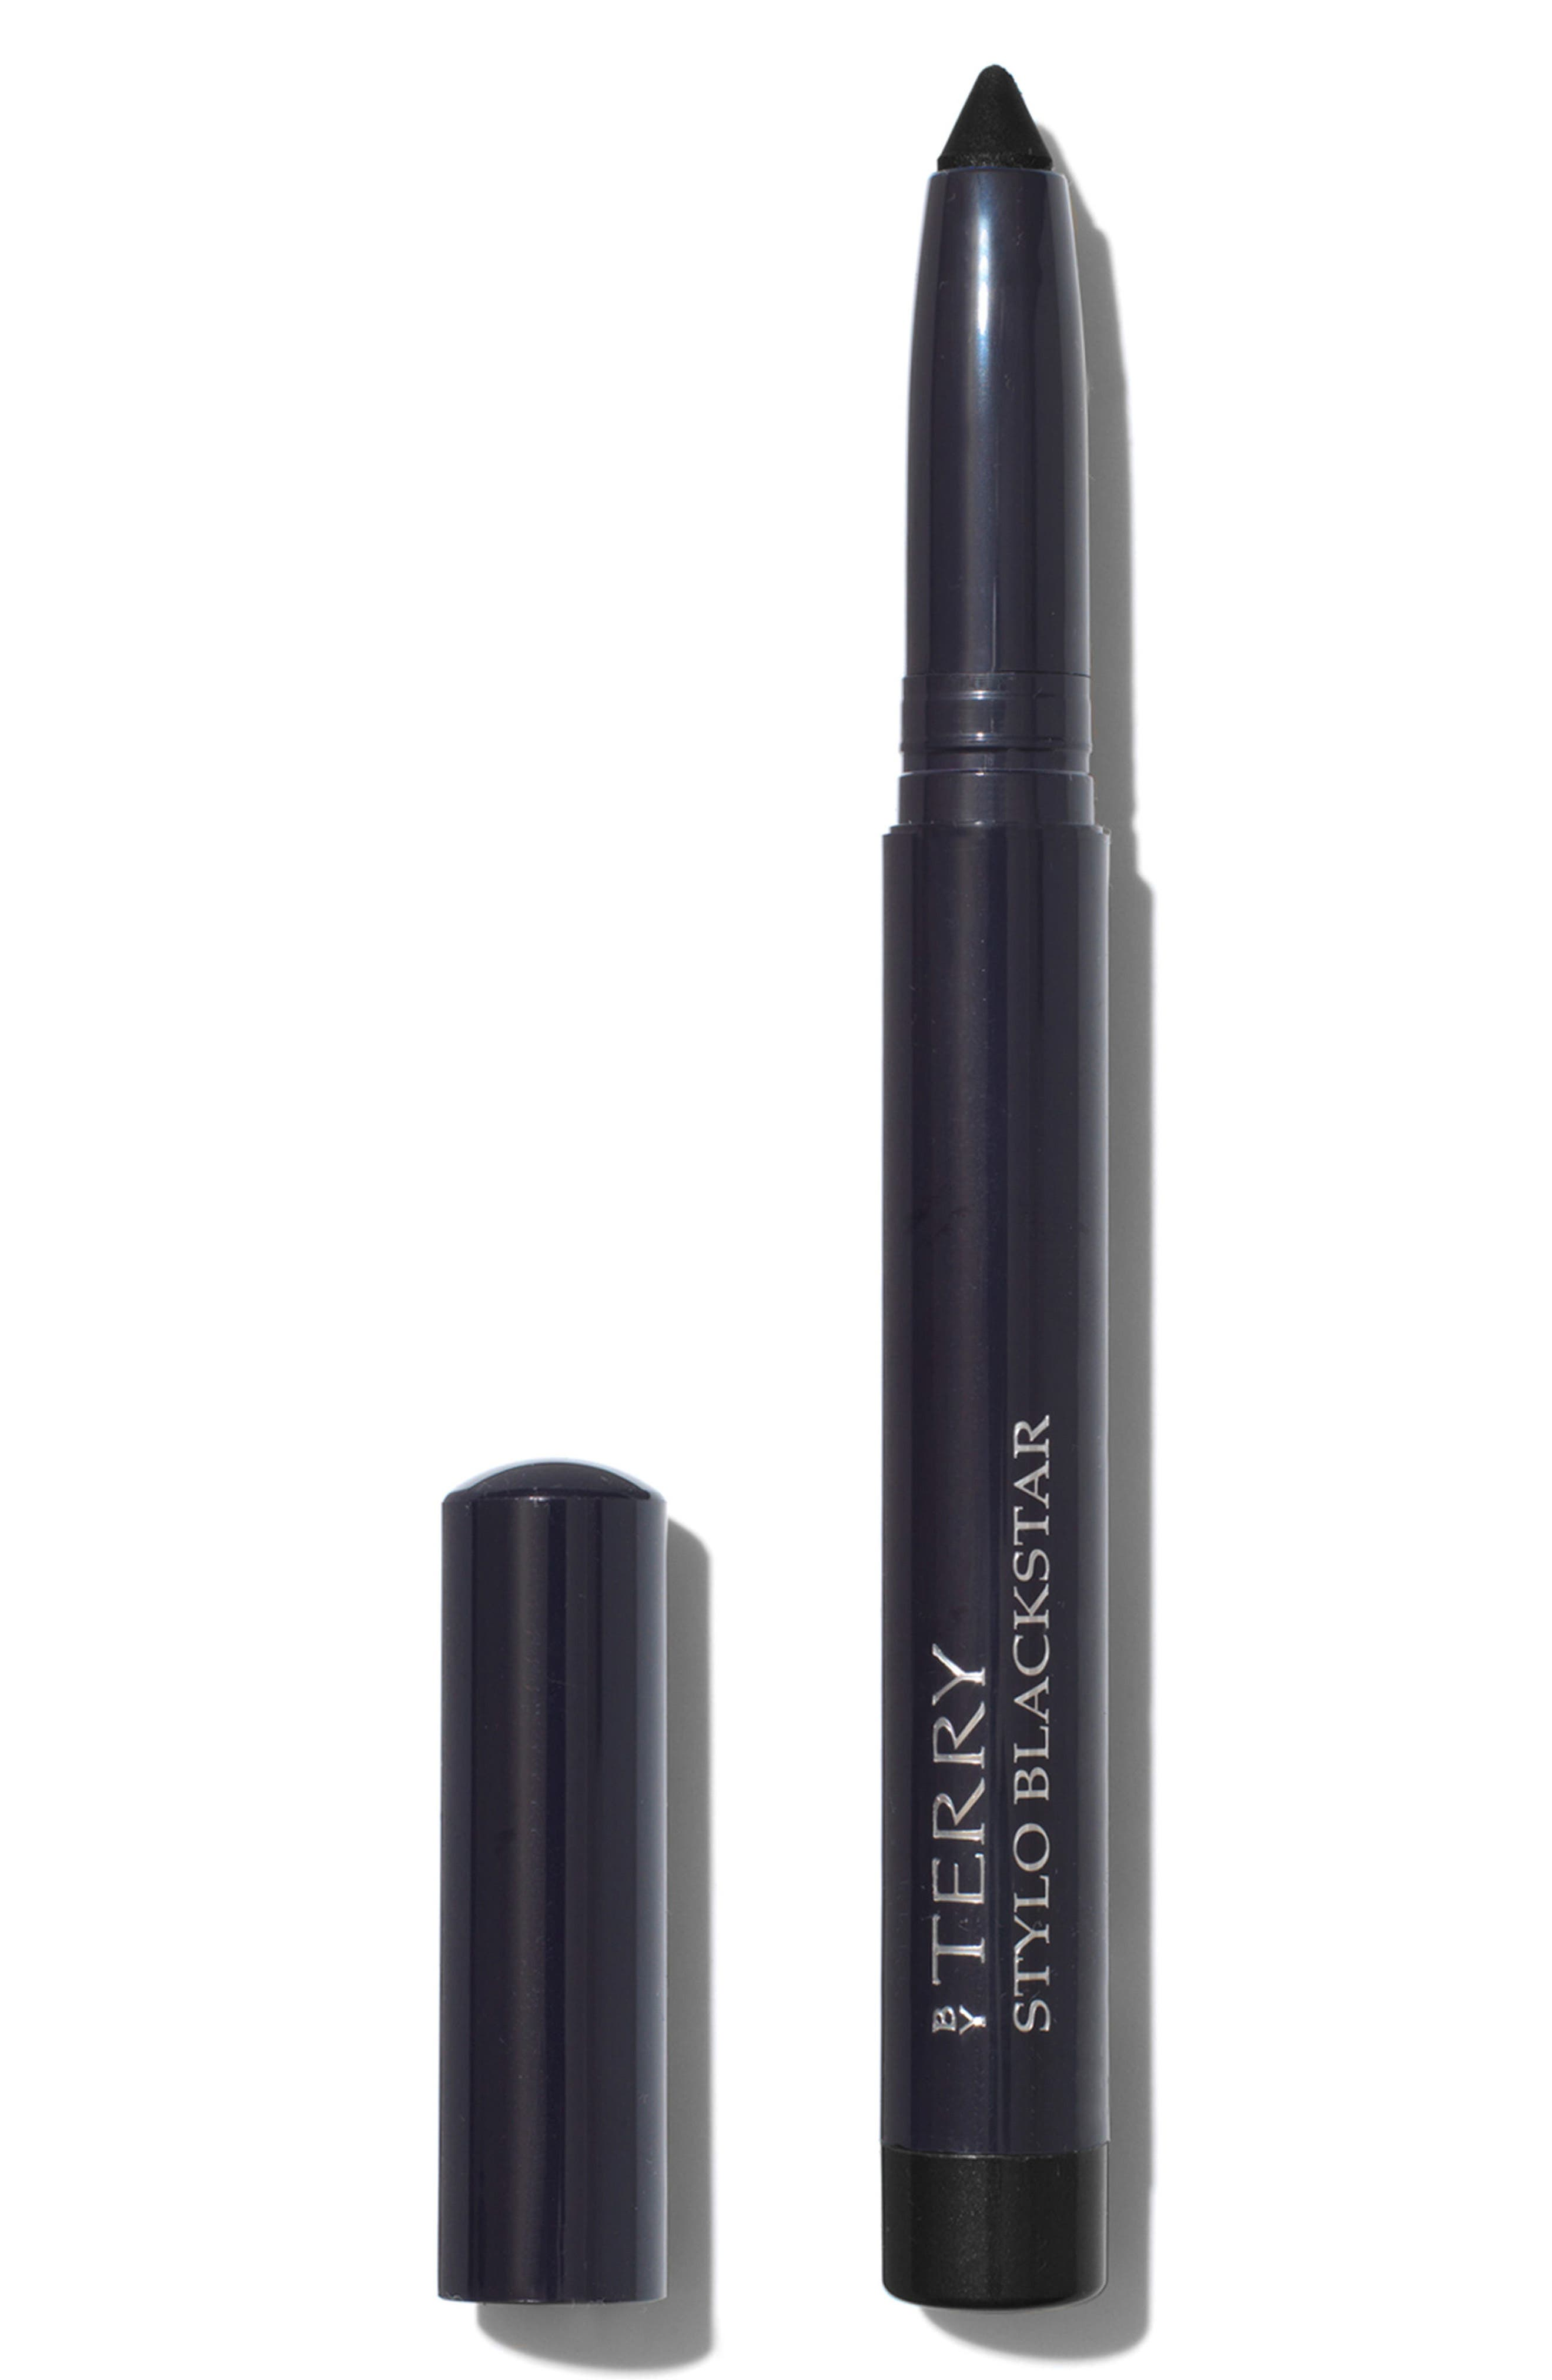 SPACE.NK.apothecary By Terry Stylo Blackstar Waterproof 3-in-1 Eye Pencil,                         Main,                         color, 1  SMOKY BLACK